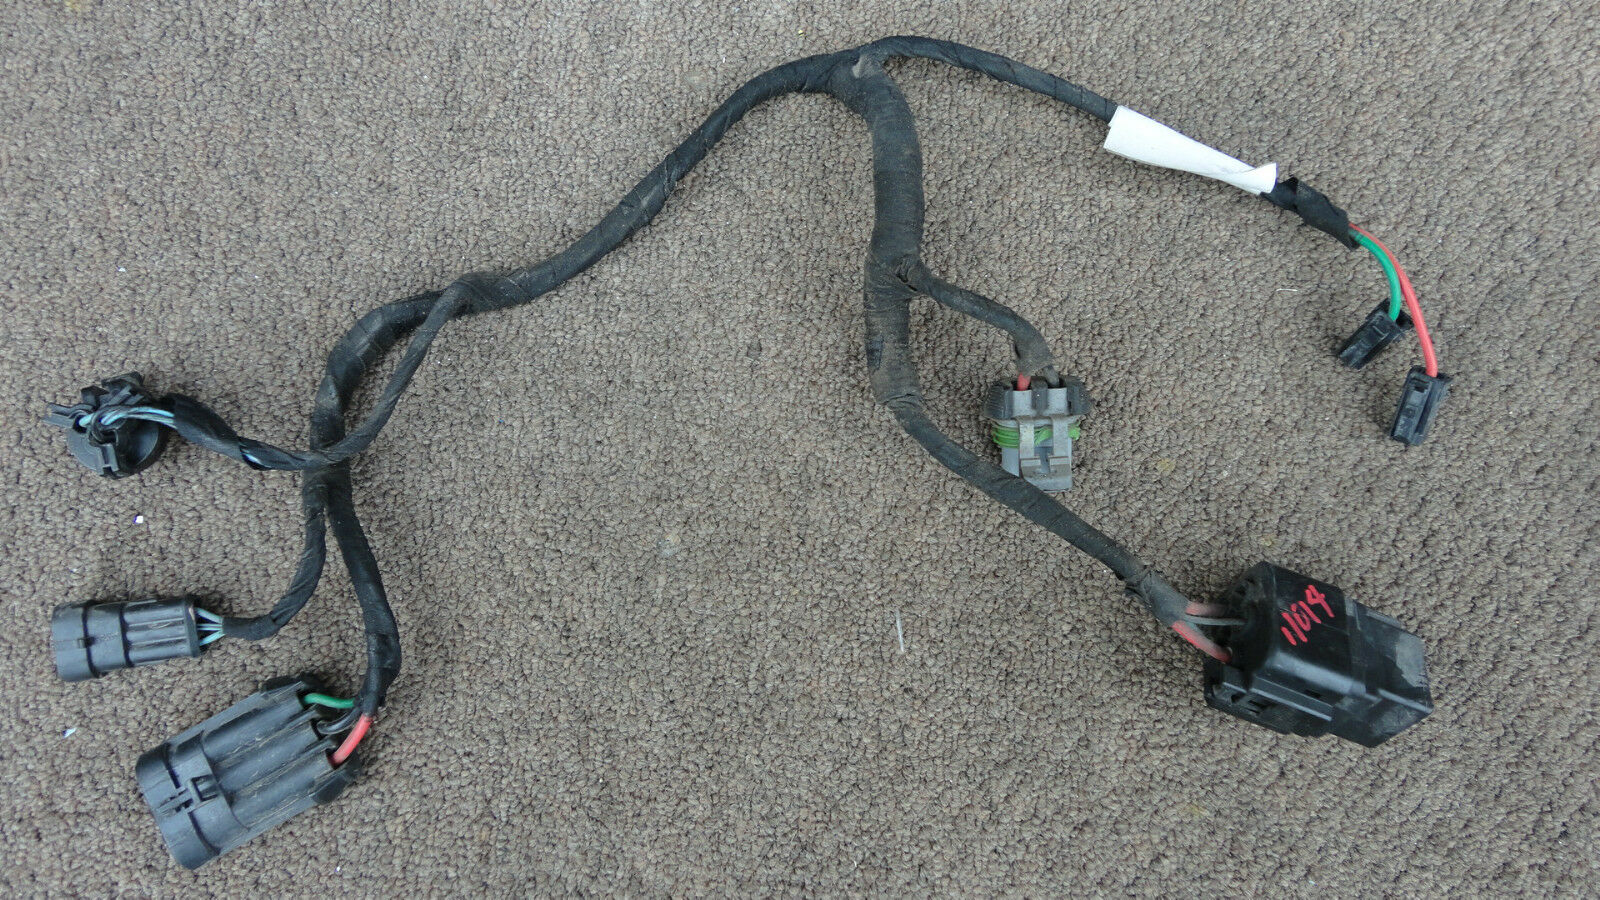 ferrari 360, rh radiator cooling fan wiring harness, p/n 179010 - exotic  auto recycling -